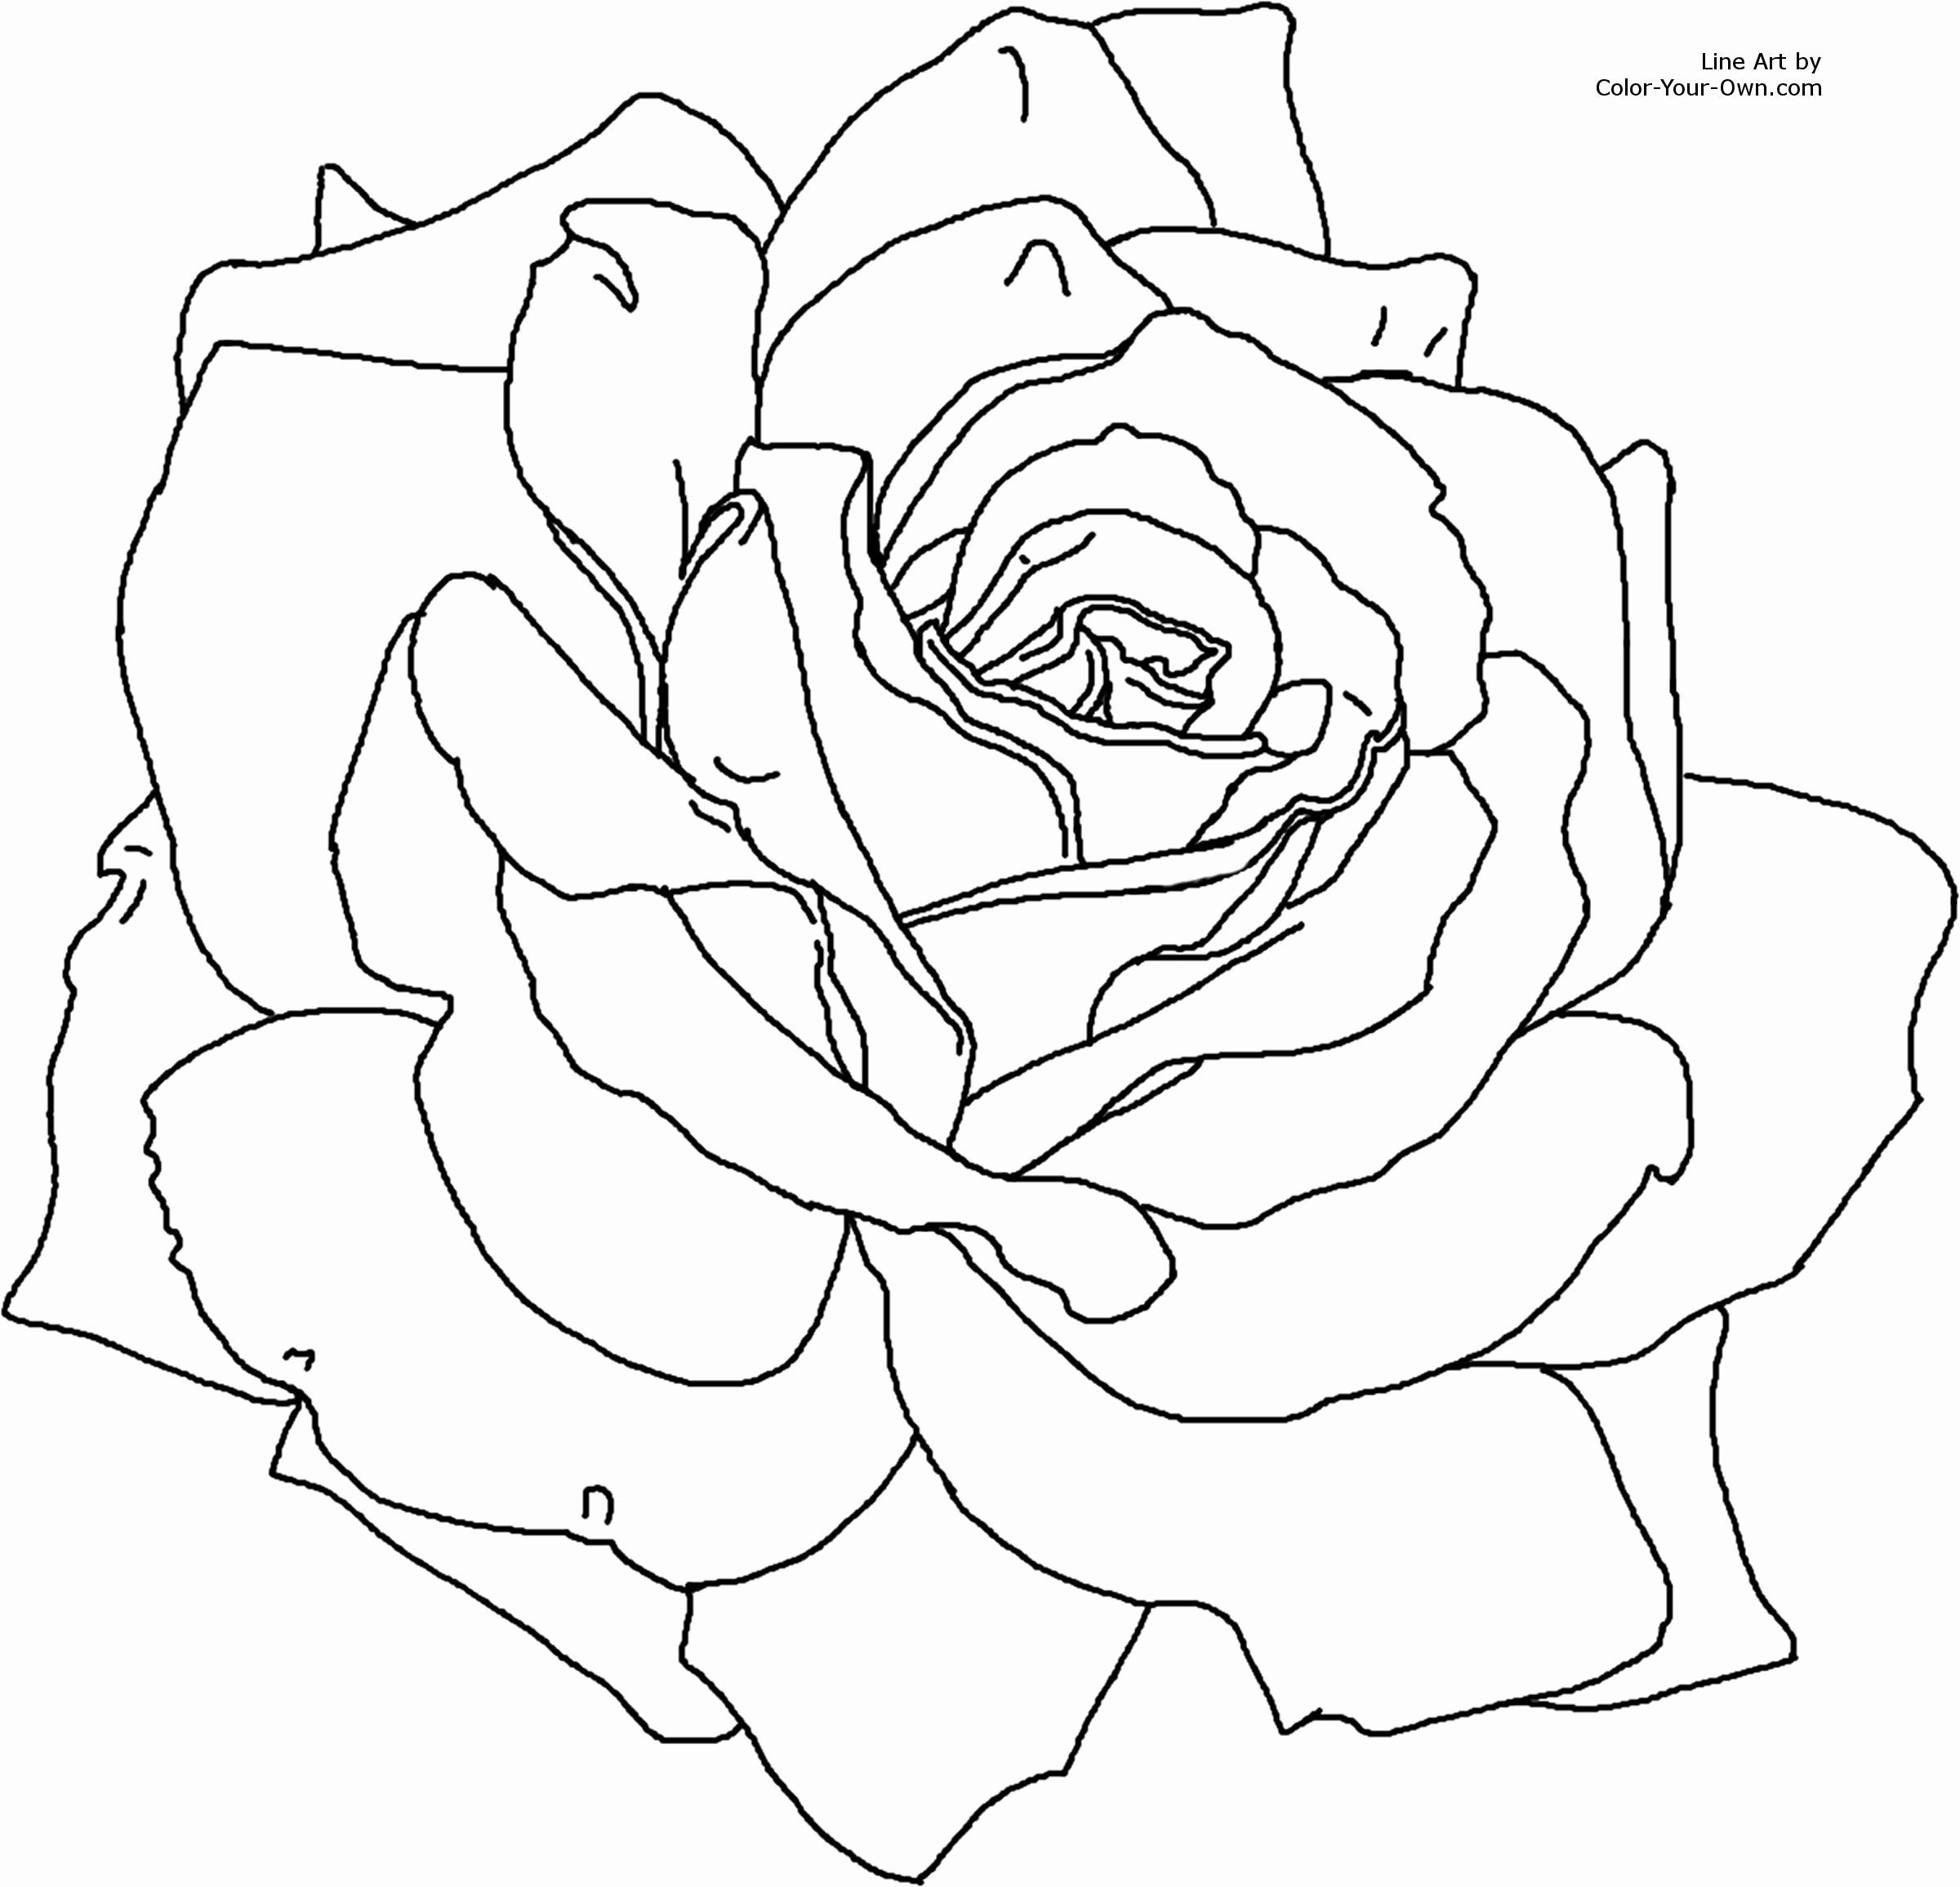 Coloring Page Cartoon Rose Unique The Best Free Flame Coloring Page Images Download From 104 Rose Coloring Pages Flower Coloring Pages Princess Coloring Pages